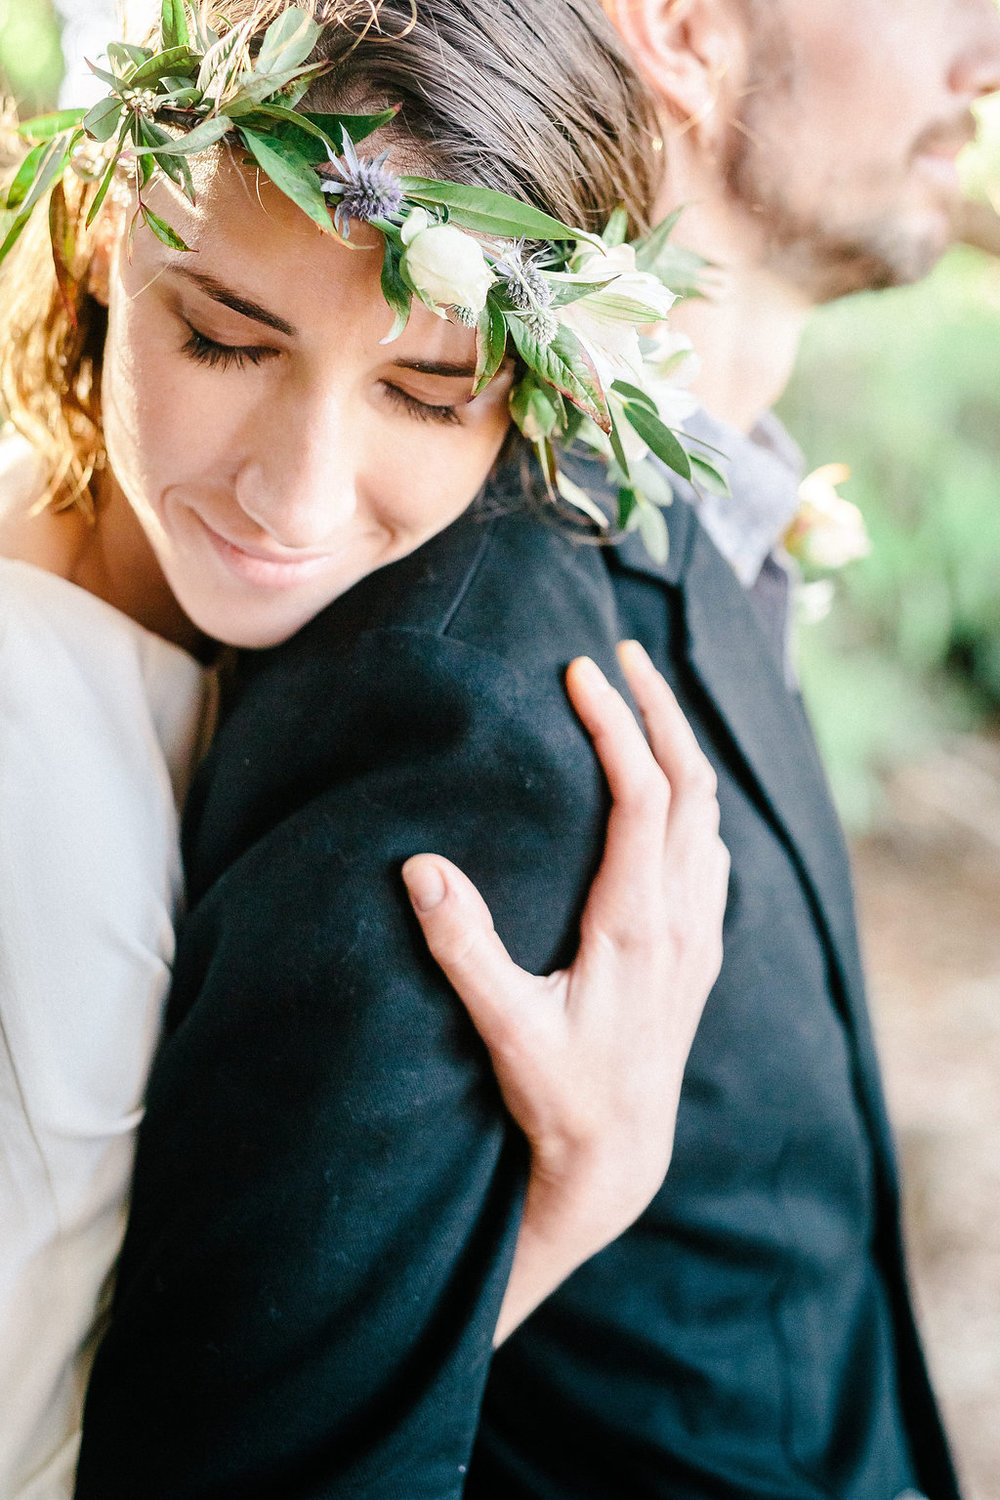 santa-barbara-elopement-wedding-ceremony-bluff-eucalyptus-grove-ellwood-bluffs-beach-ocean-view-planner-coordinator-coordination-elope-rustic-donuts-beer (17).jpg